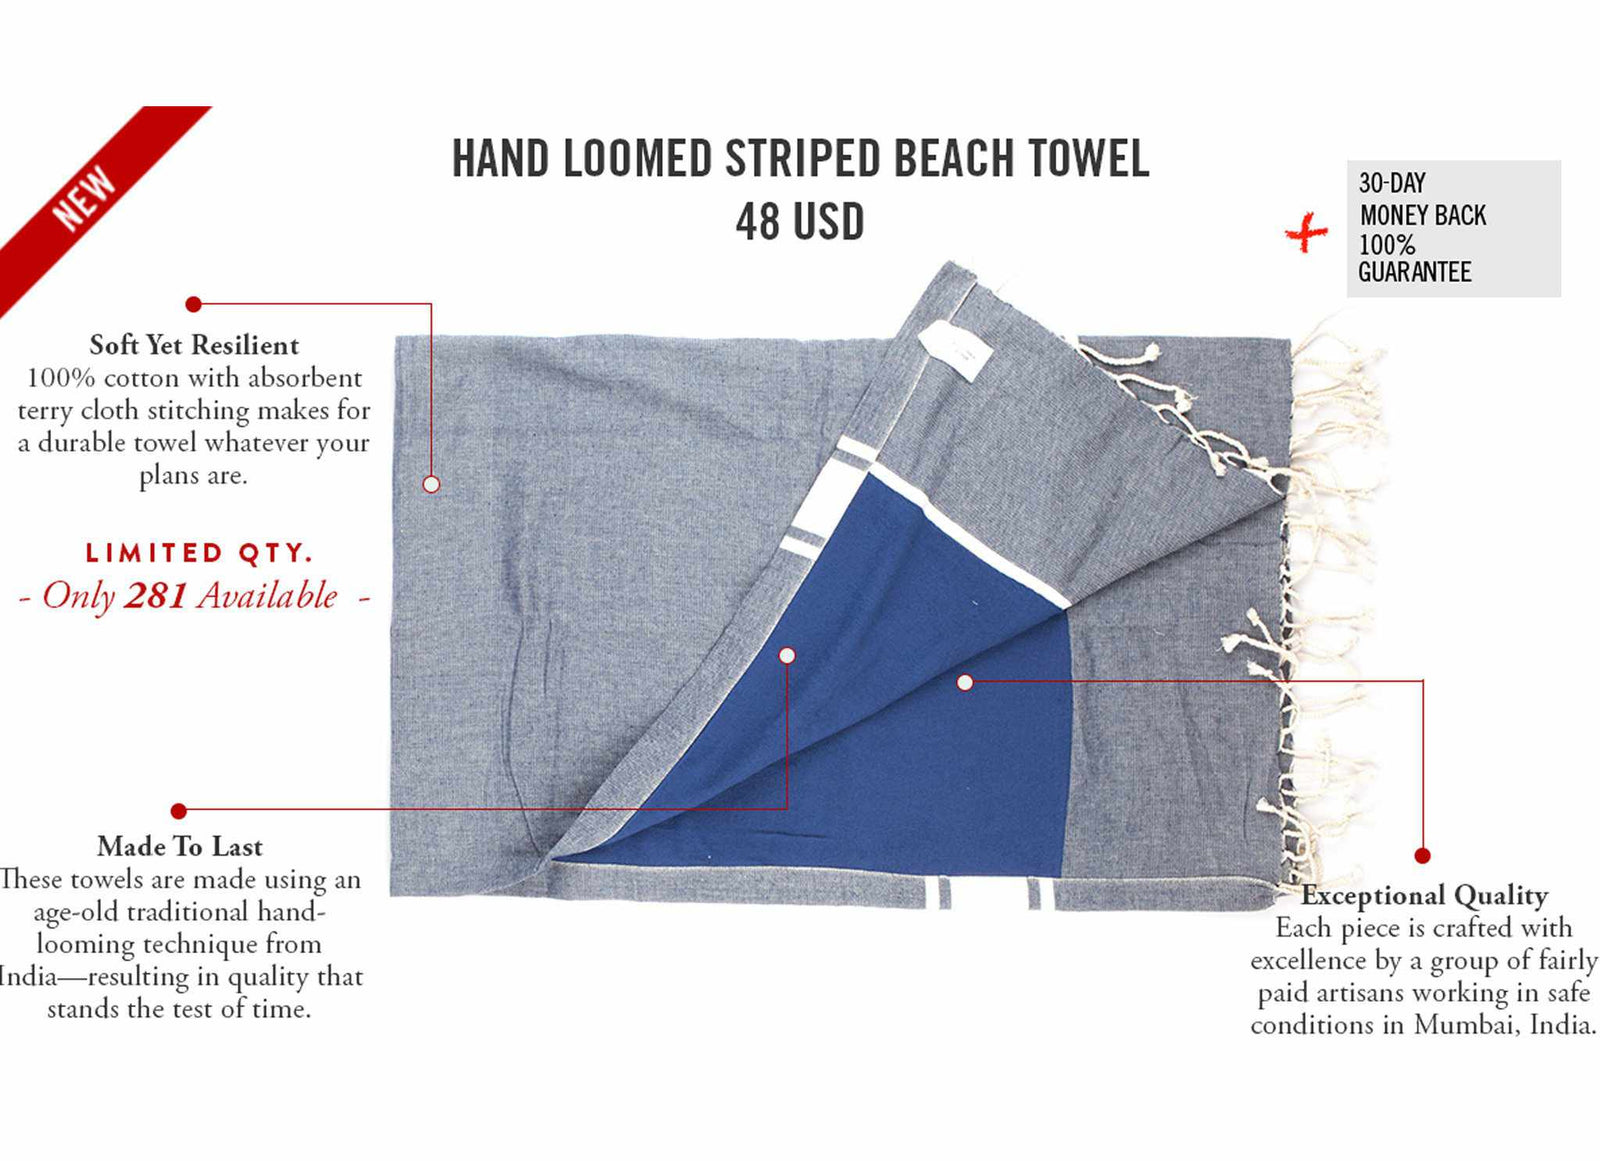 Hand-Loomed Striped Beach Towel